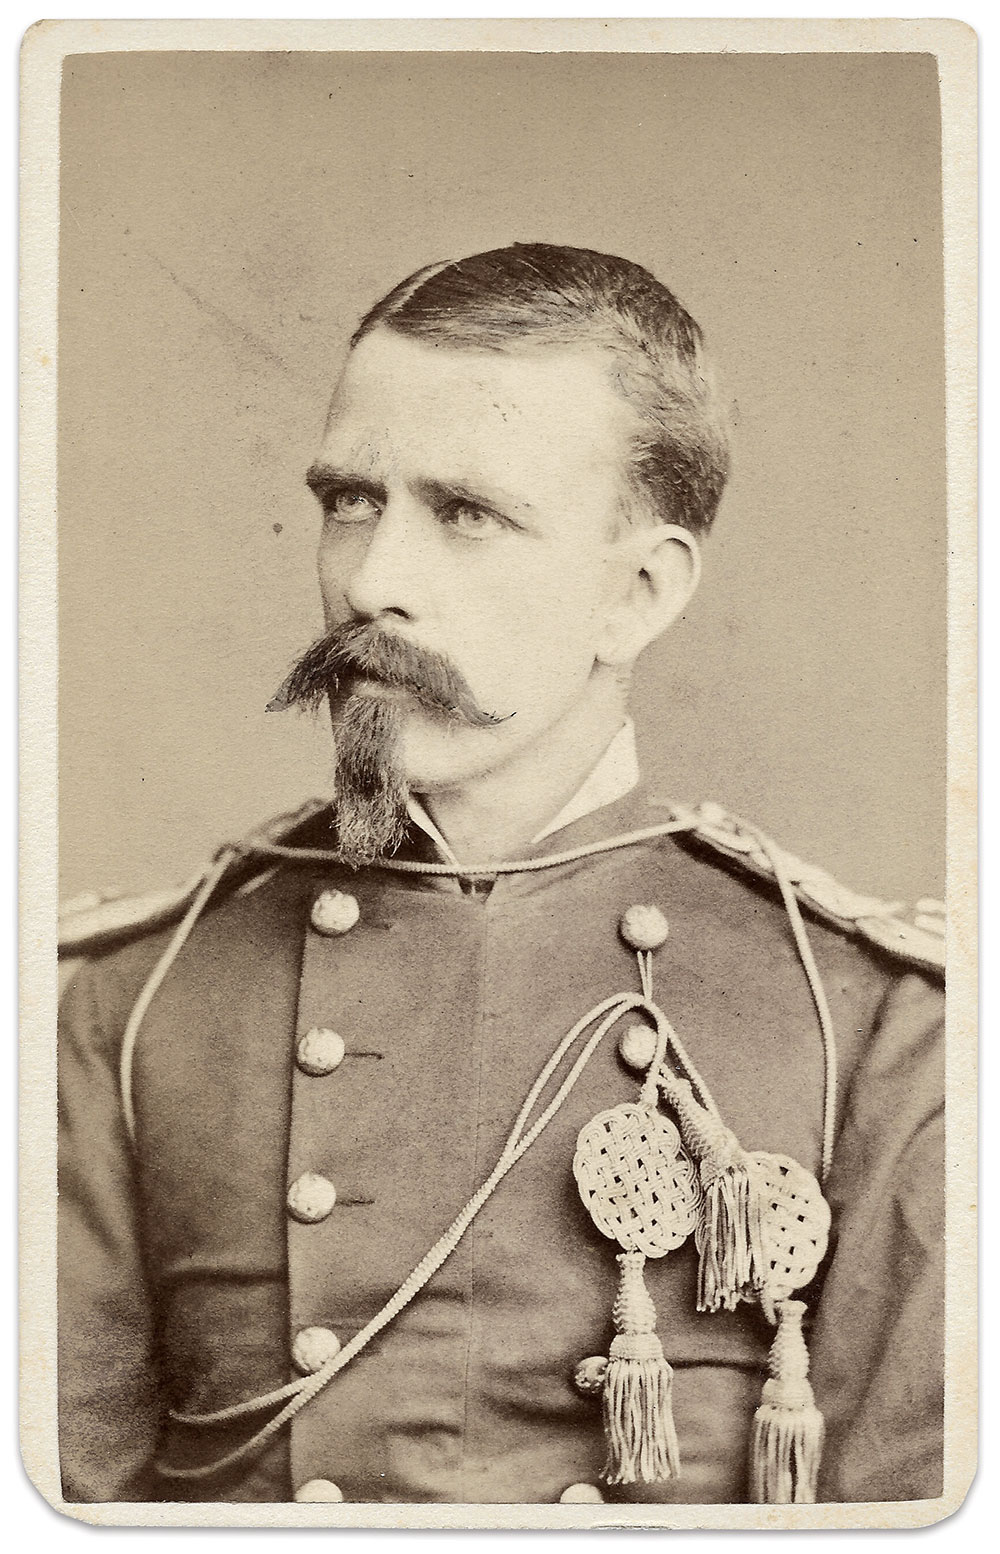 Crawford as an officer in the 3rd U.S. Cavalry. Cabinet Card by Gilbert & Bacon of Philadelphia, Pa. Mark Kasal Collection.